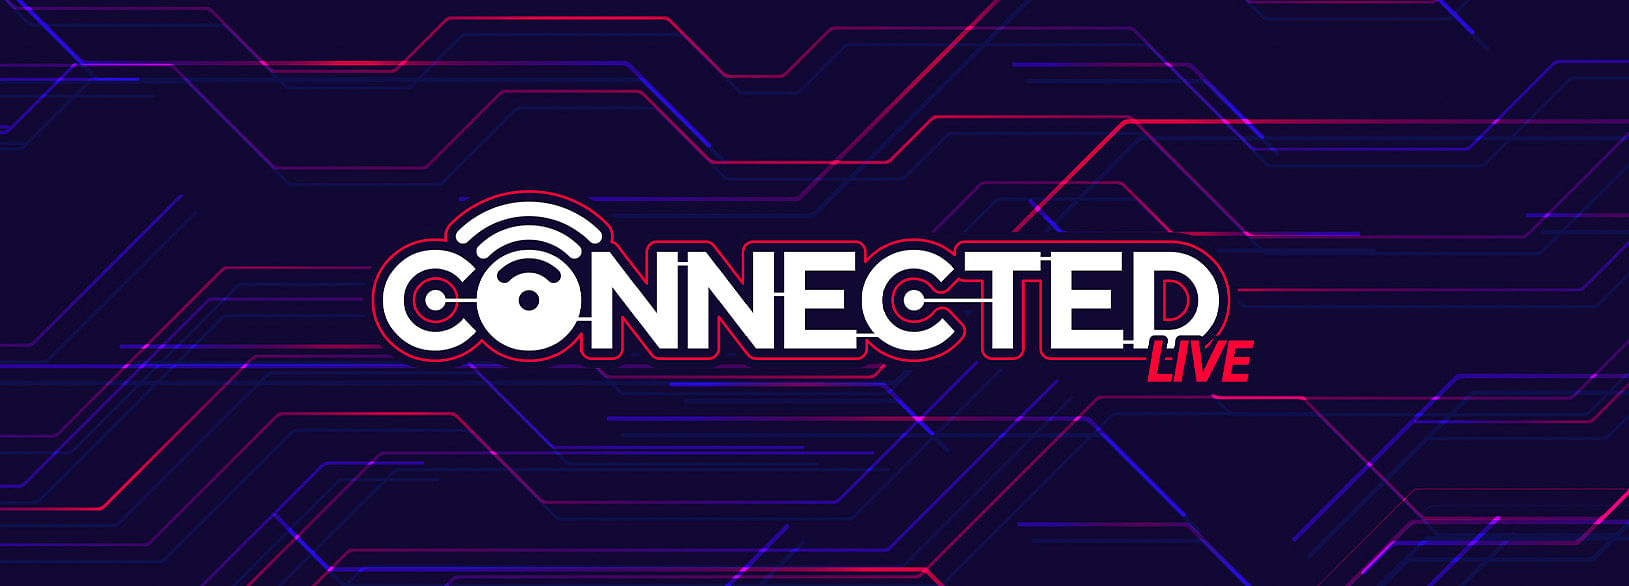 Connected Live